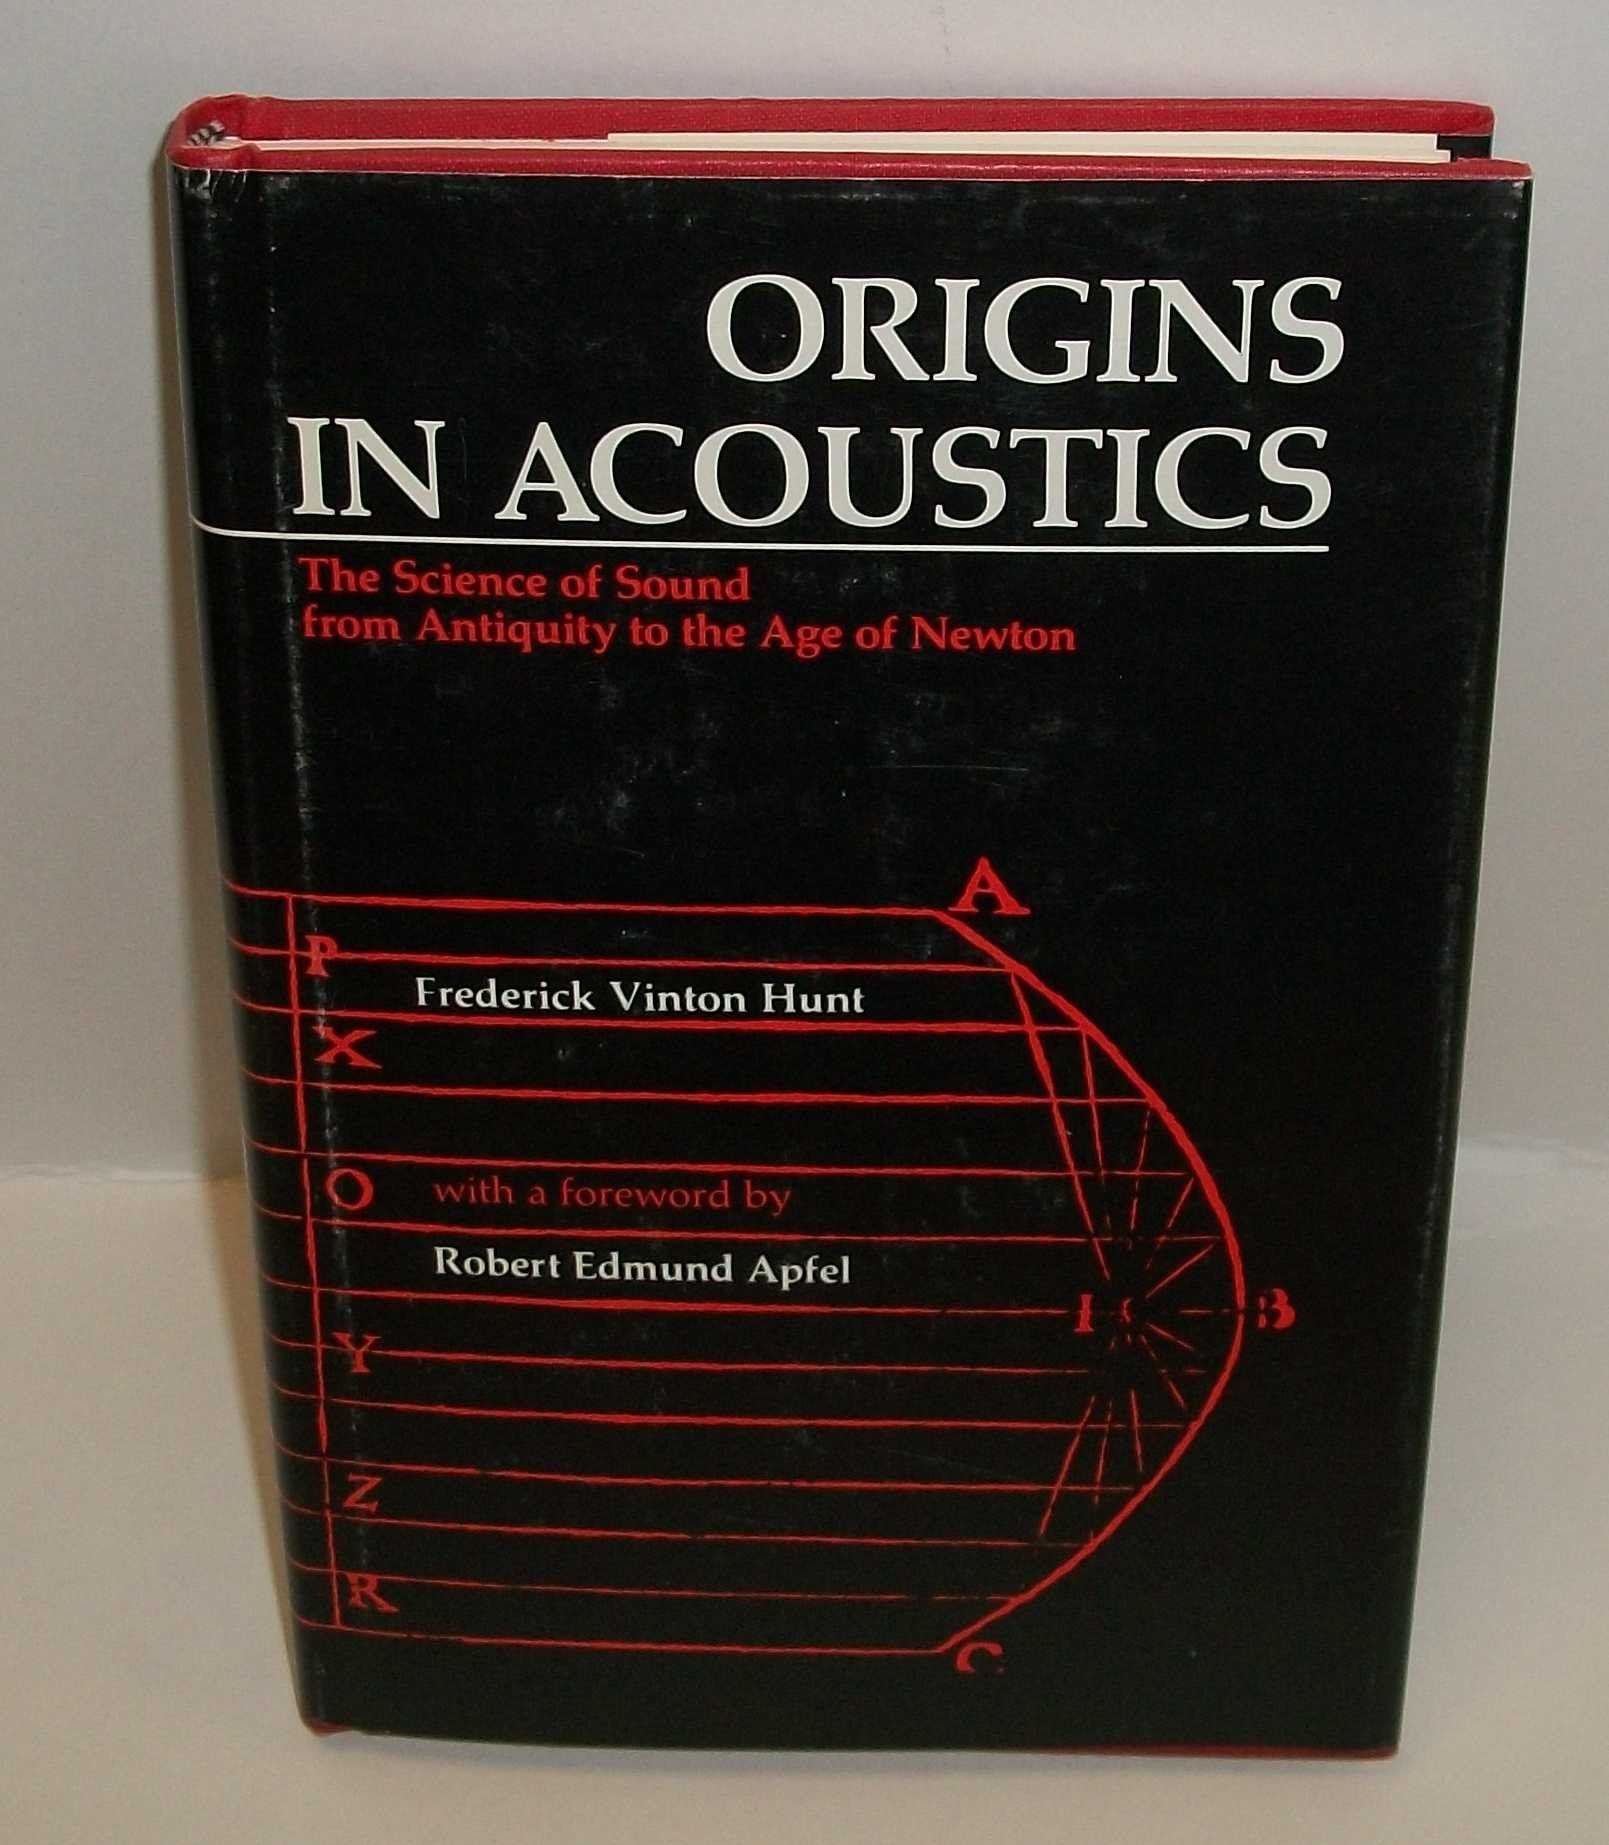 Acoustics is the science of sound. The main directions of modern acoustics 21